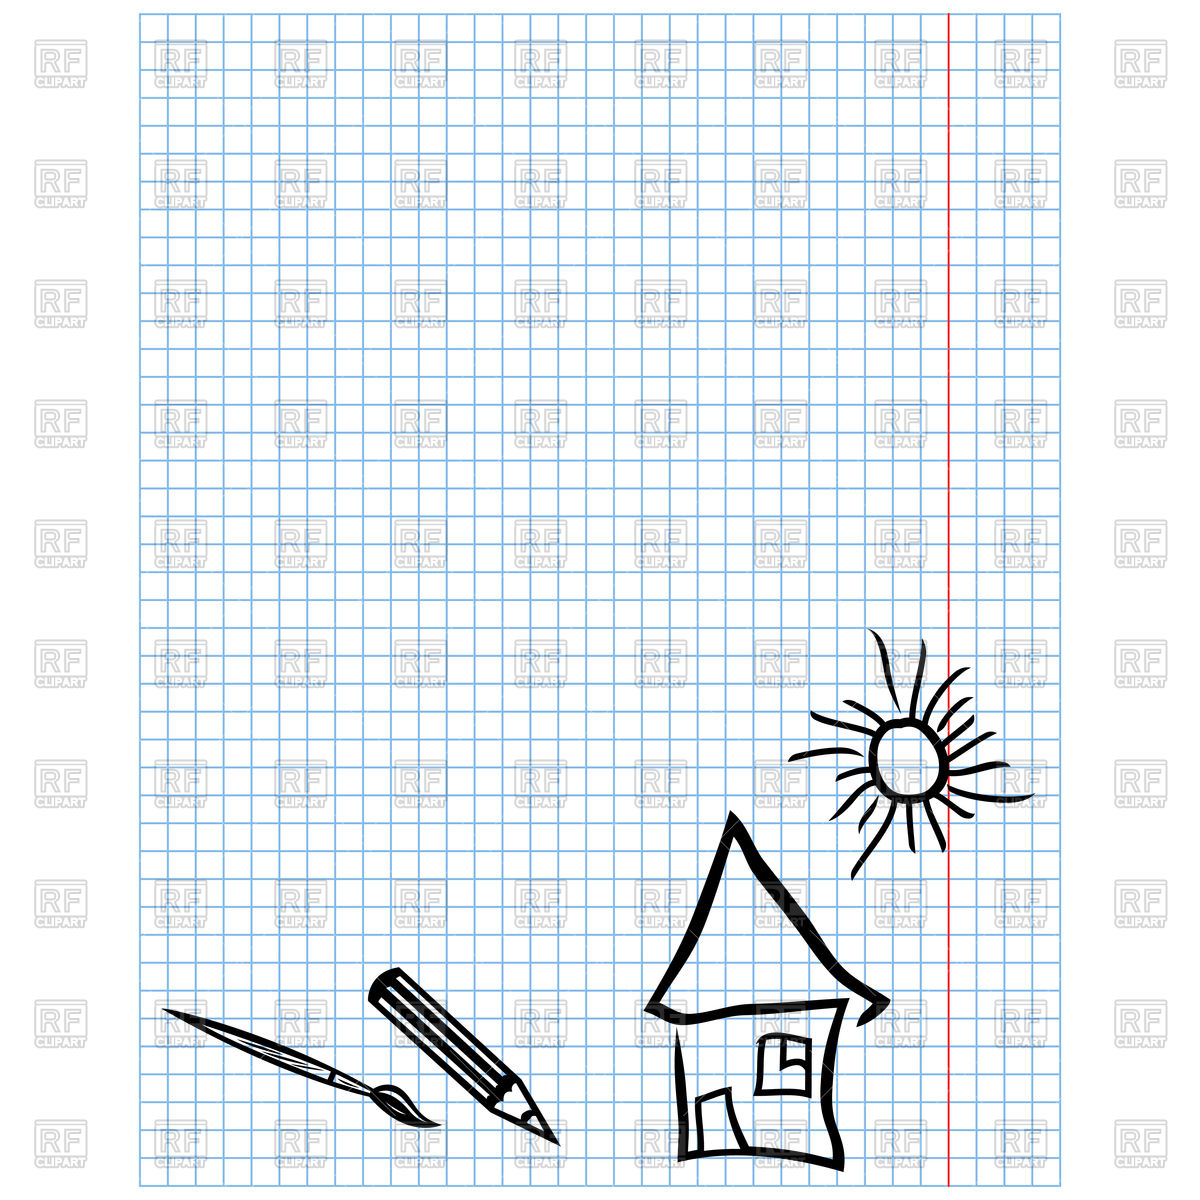 1200x1200 Childish Simple Drawings On Checkered Sheet Vector Image